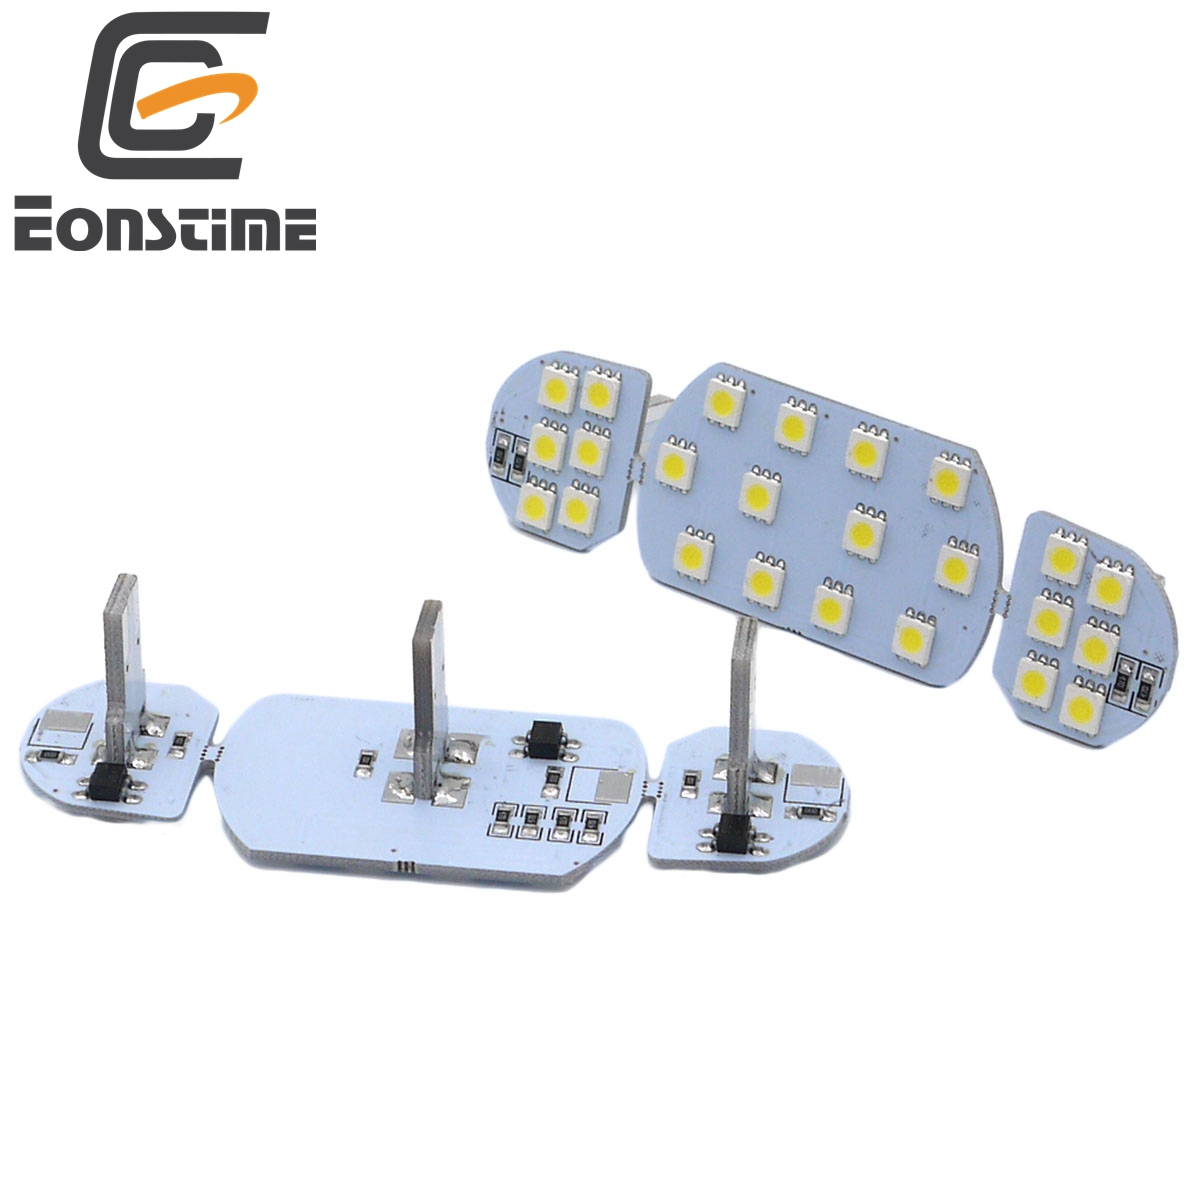 Eonstime 12V 6pcs/set Car Auto <font><b>Led</b></font> Interior Dome Reading <font><b>Light</b></font> Lamp for <font><b>PEUGEOT</b></font> 206 307 <font><b>308</b></font> 3008 408 508 CITROEN C5 image